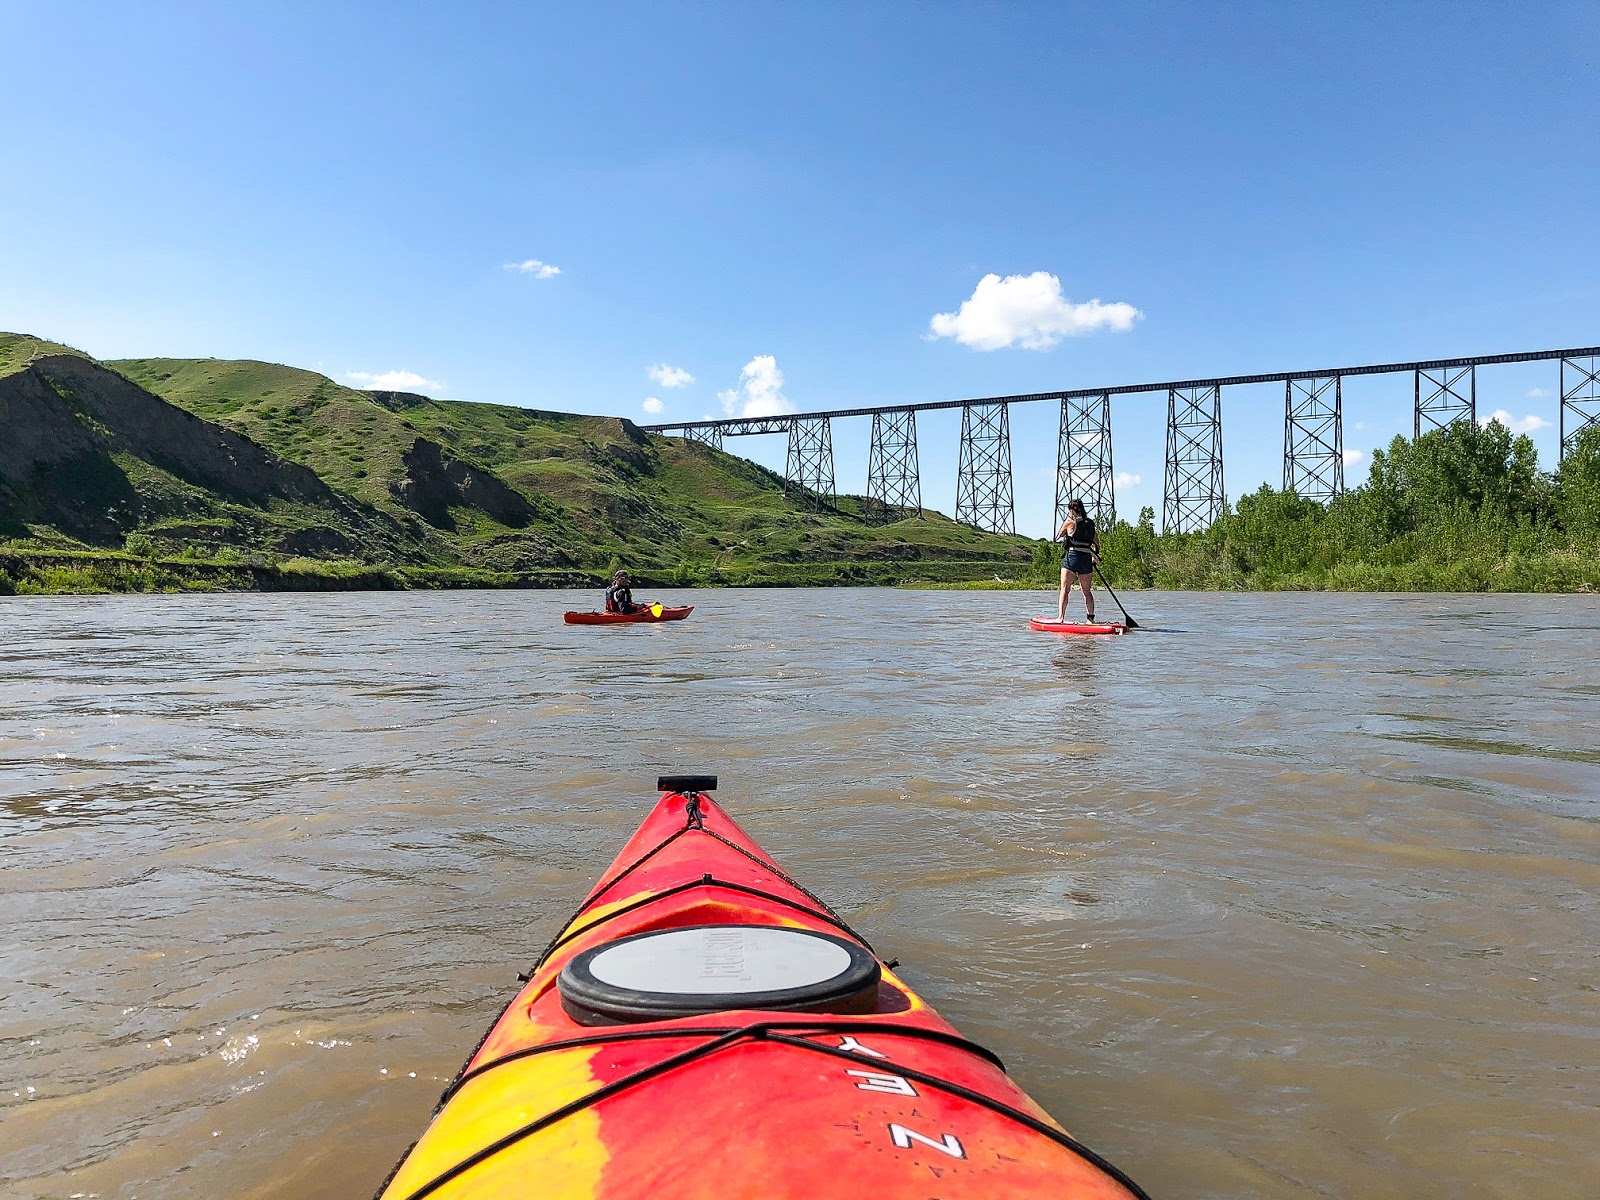 Paddling the Old Man River in Lethbridge